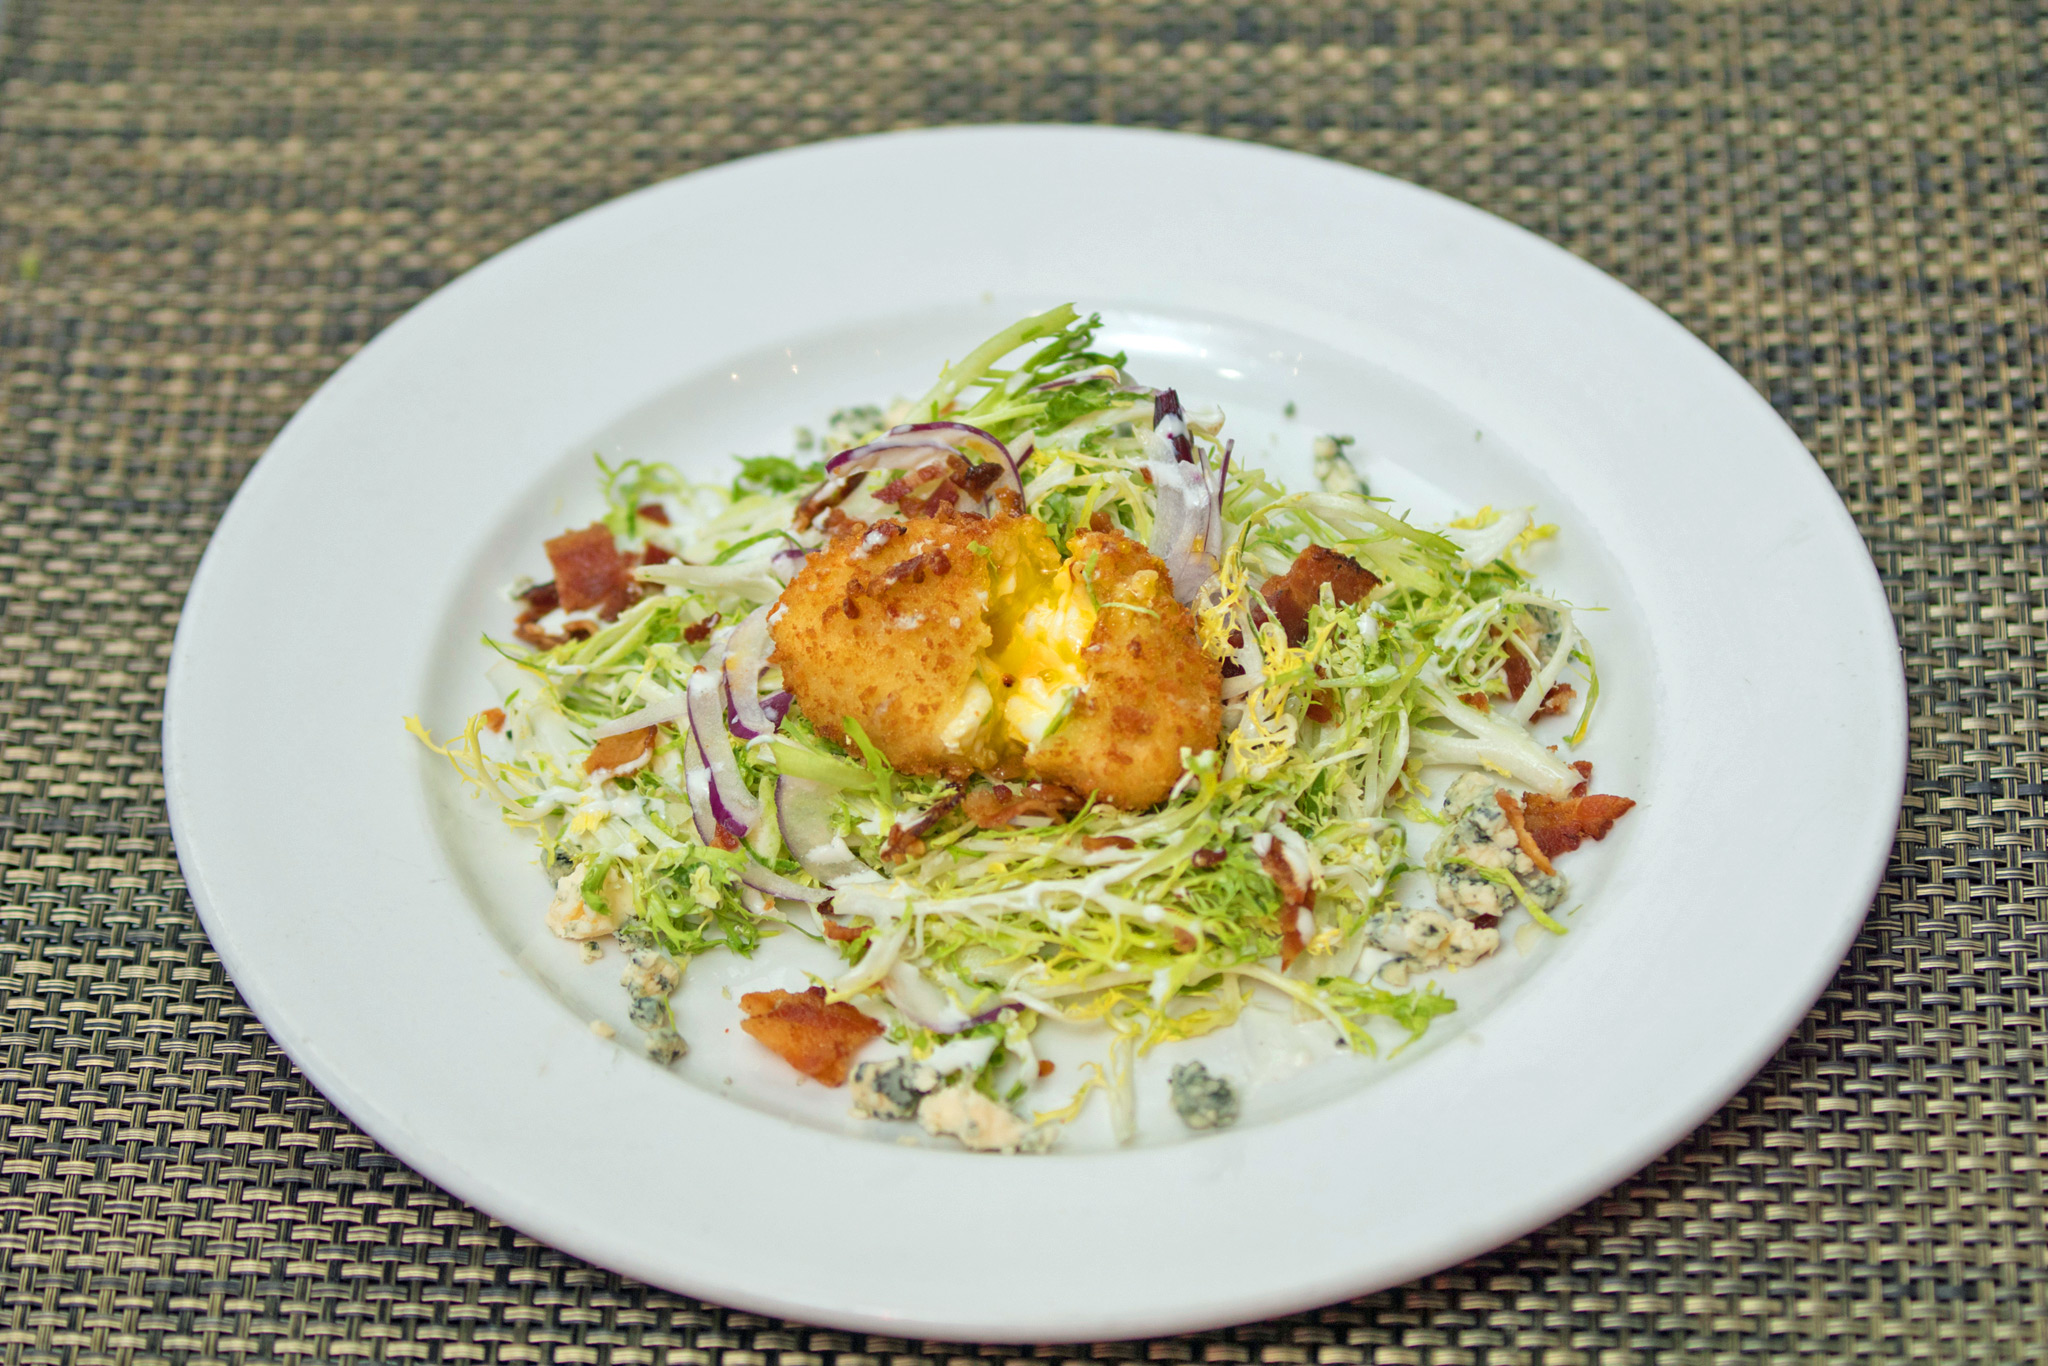 Frisee and Brussel Sprout Salad - crispy poached egg, applewood bacon bits, shaved onion, blue cheese vin